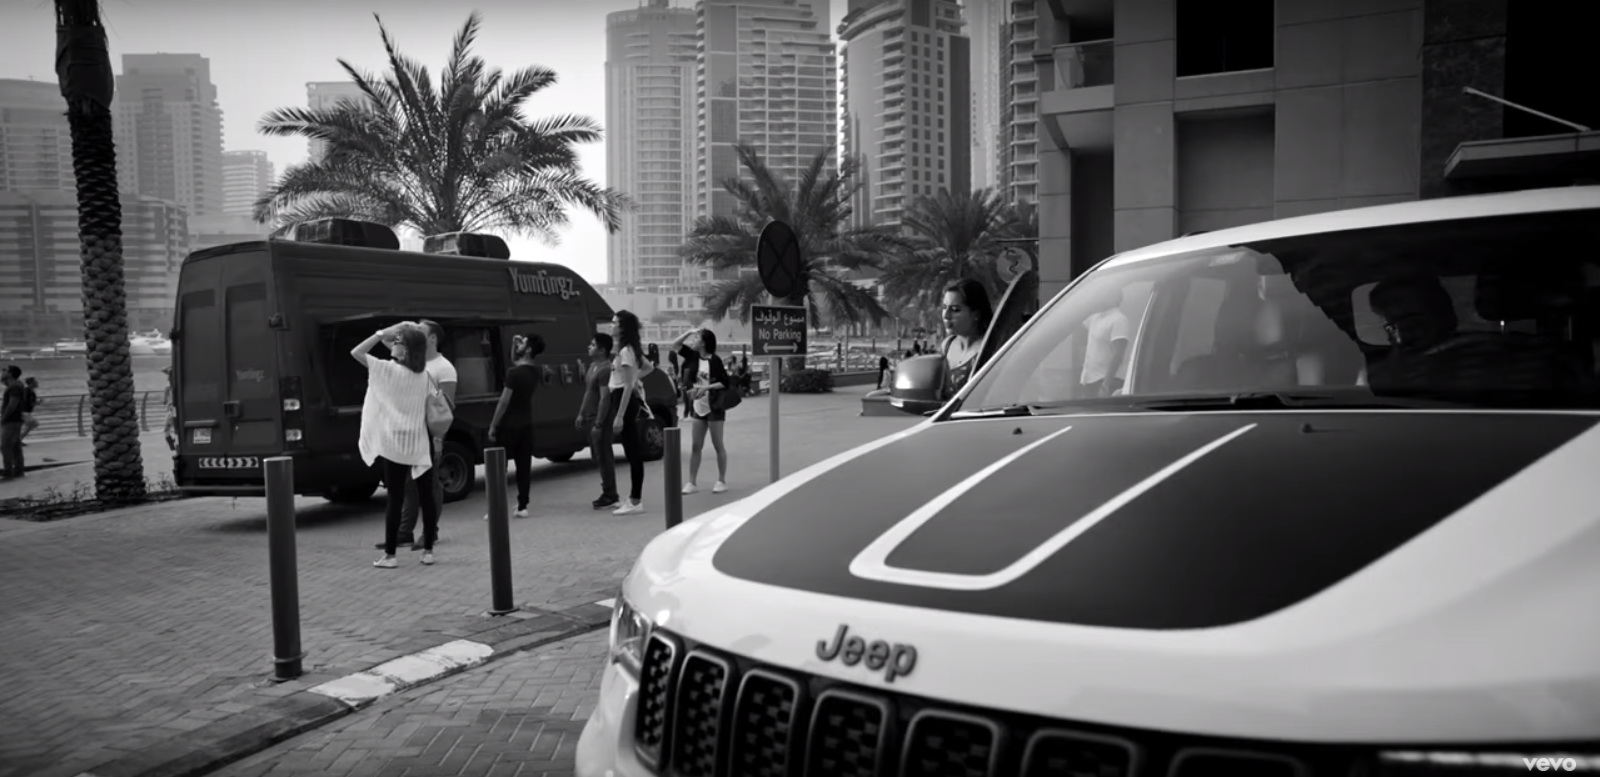 Jeep Grand Cherokee - Imagine Dragons - Thunder Official Music Video Product Placement